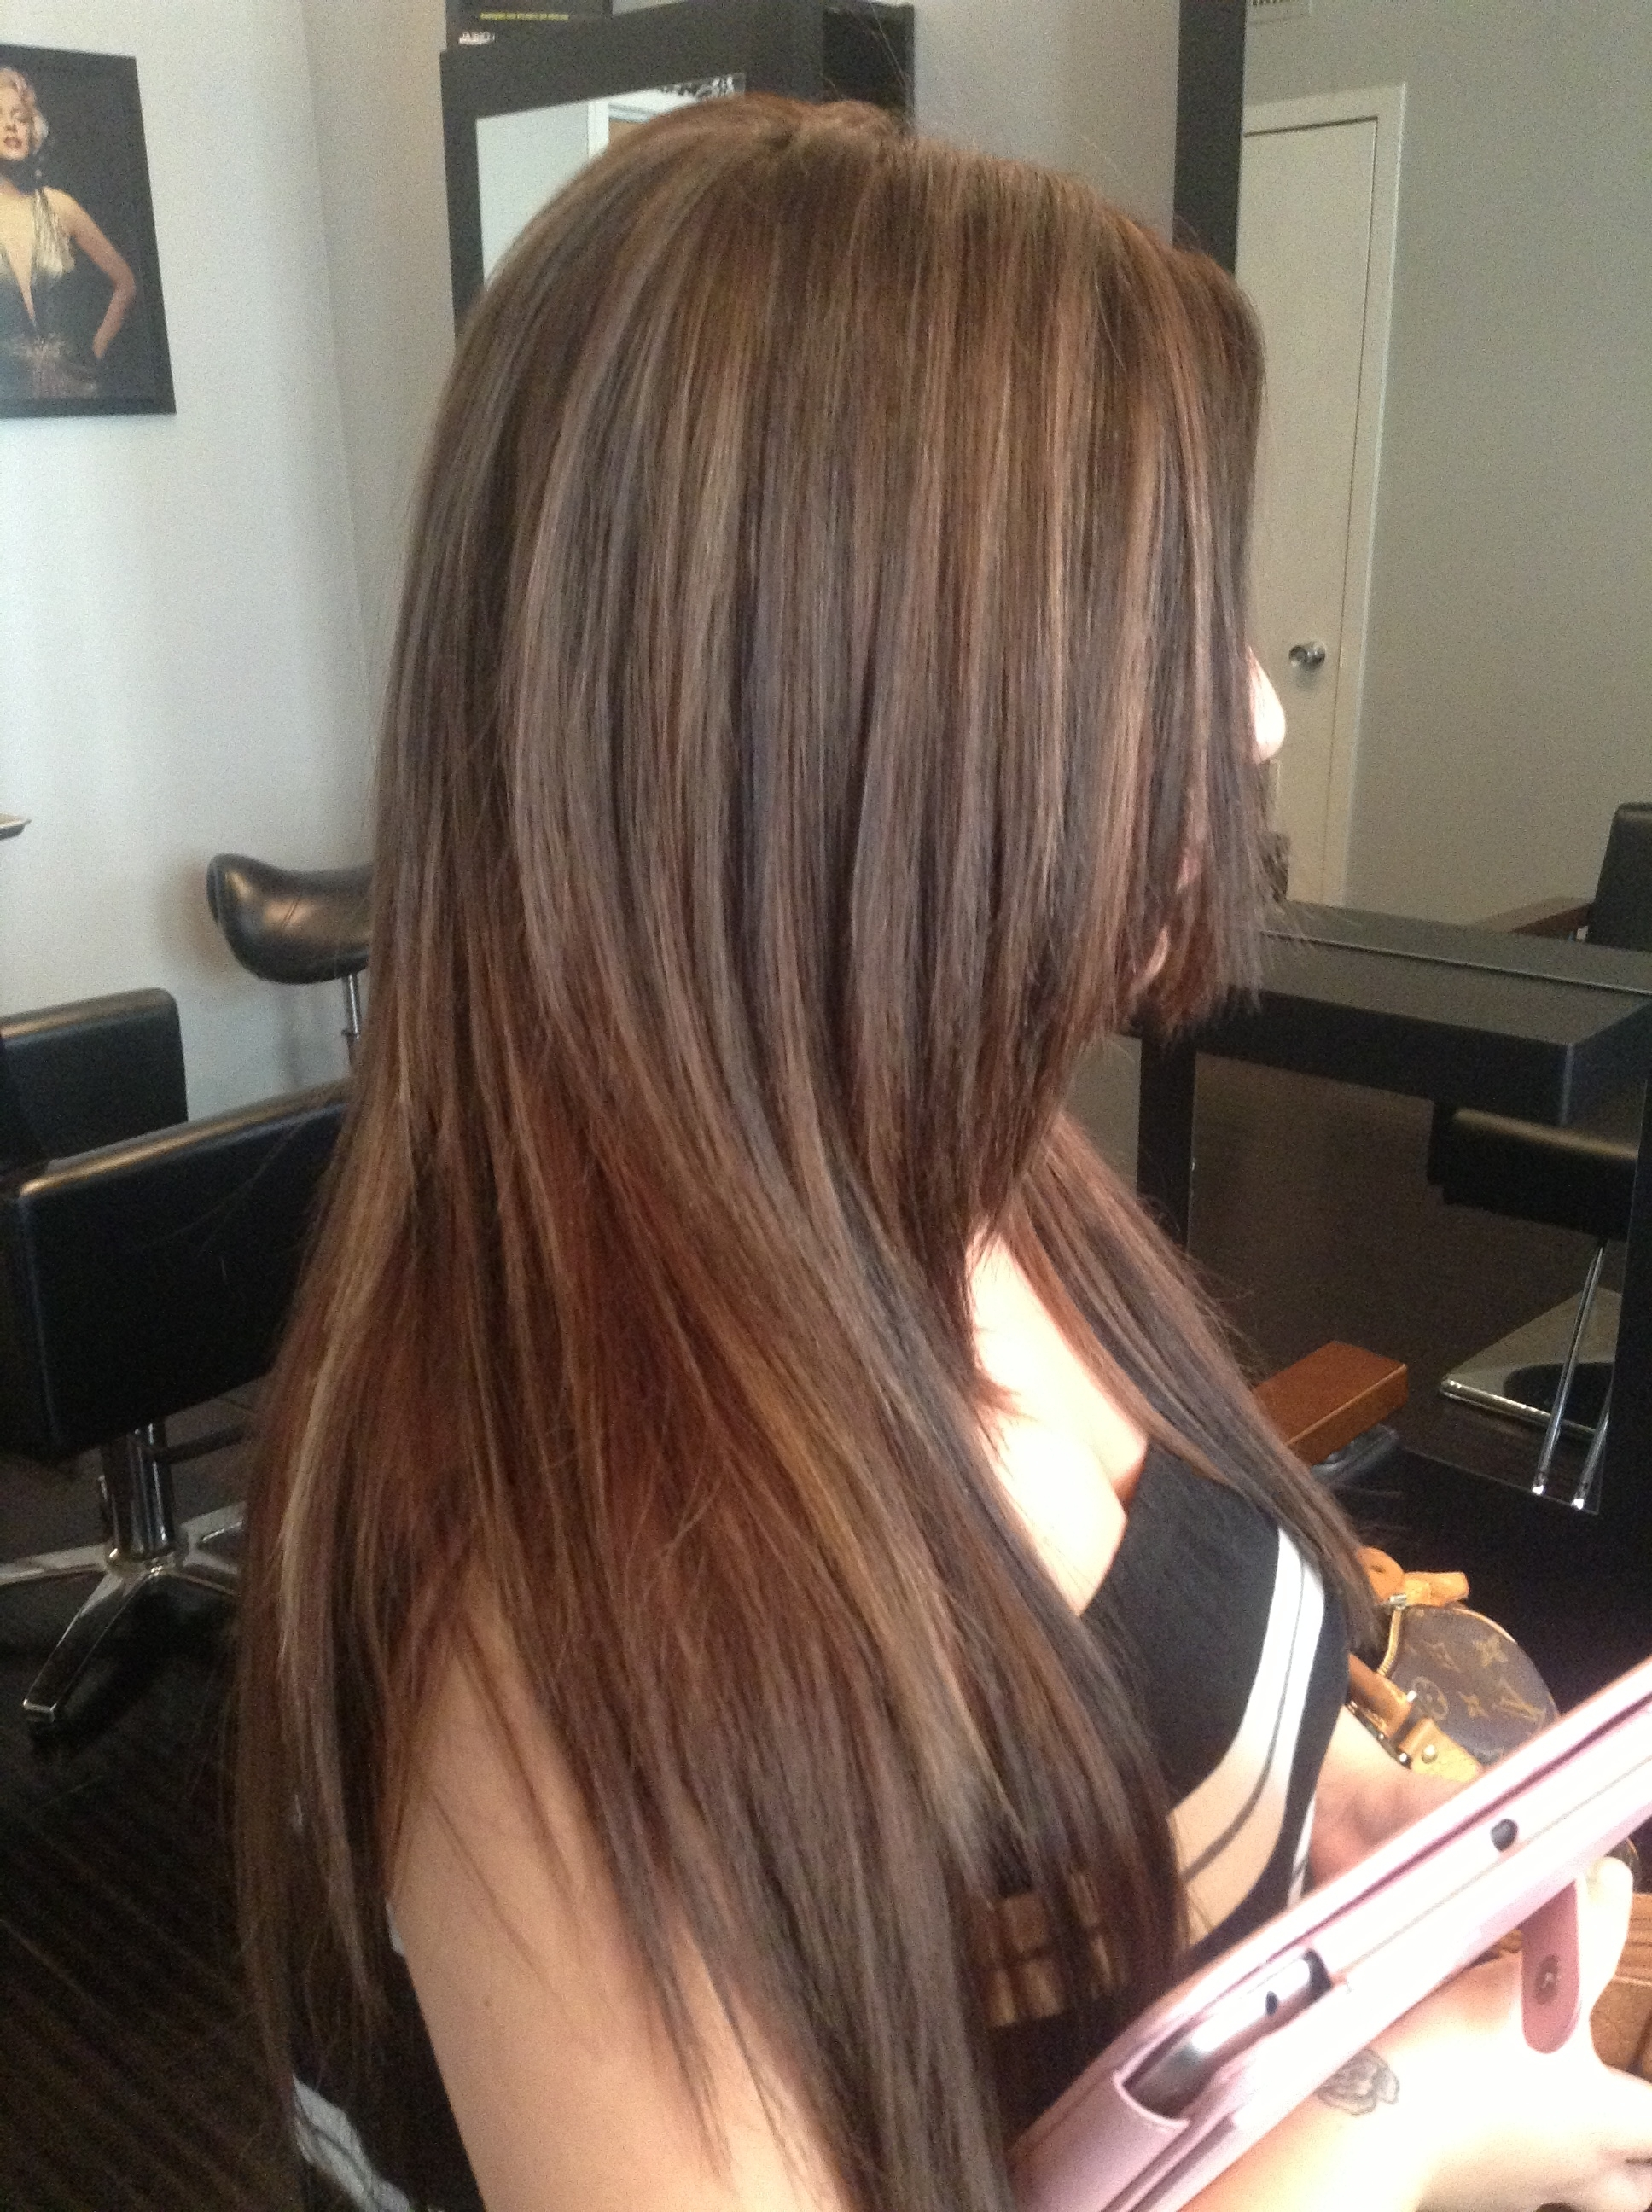 Trendy Brown And Dark Blonde Layers Hairstyles For 26 Medium Brown Hair With Caramel Highlights Fresh (View 17 of 20)